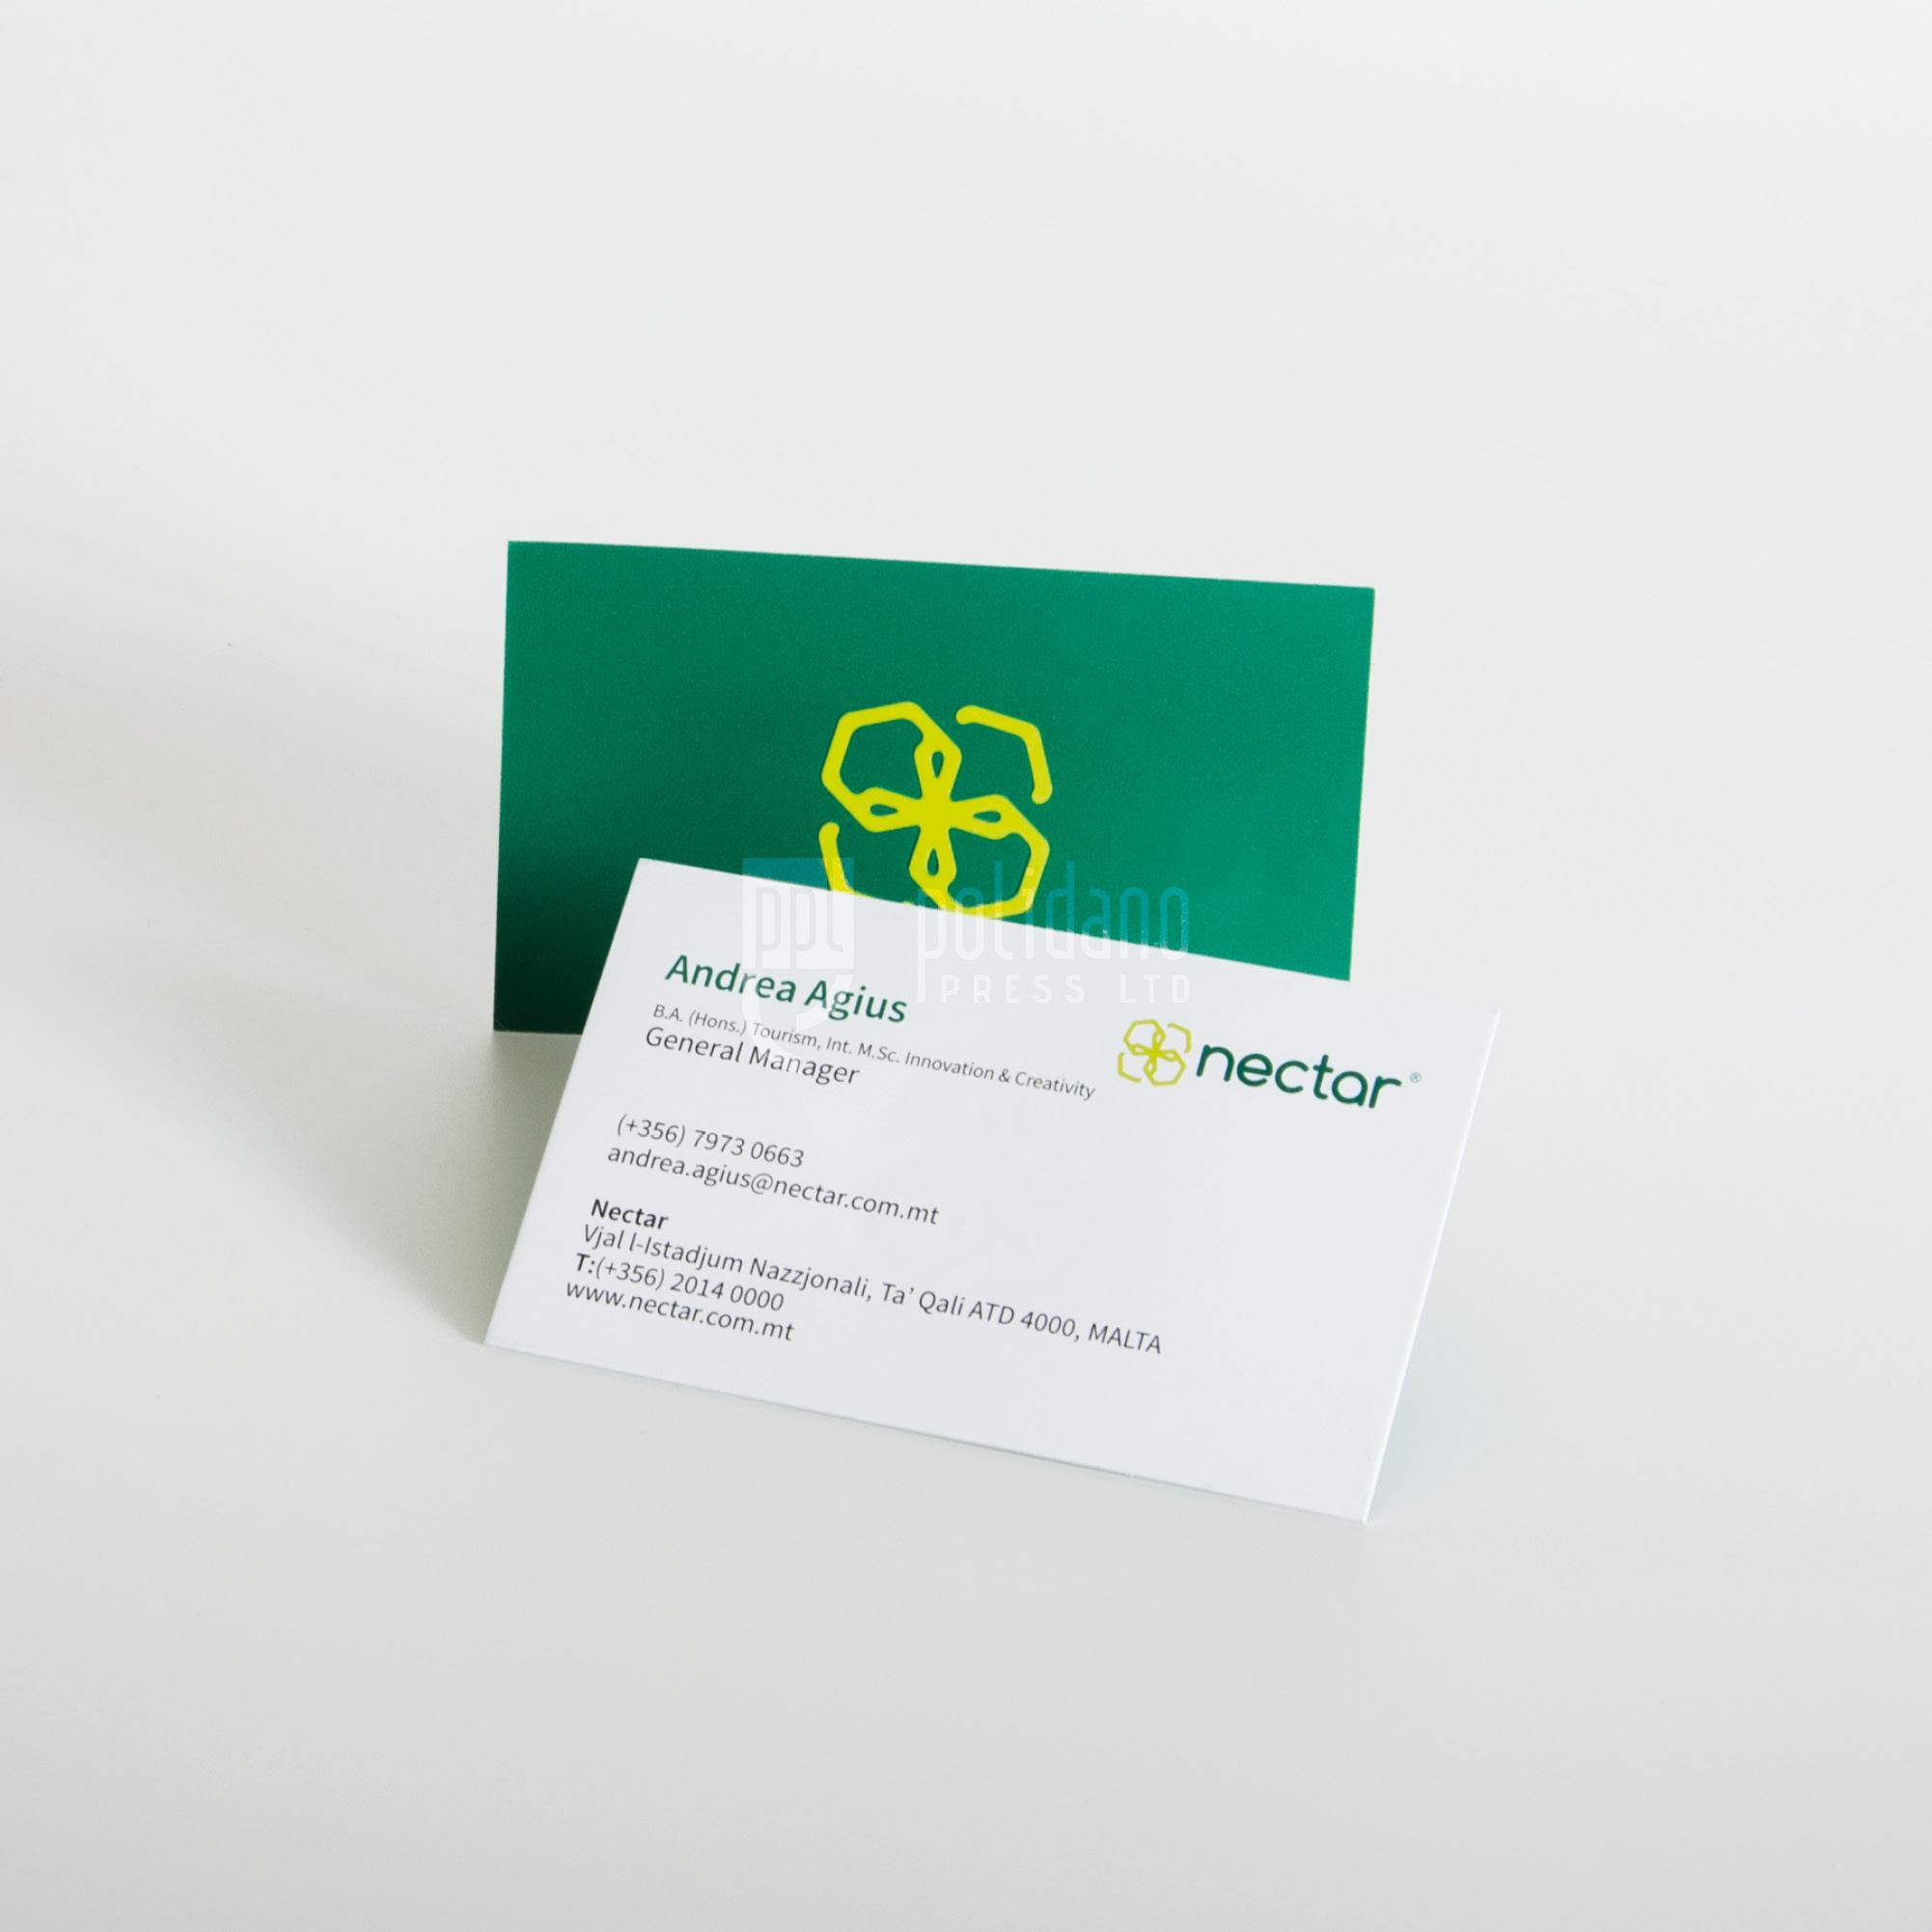 Nectar business cards